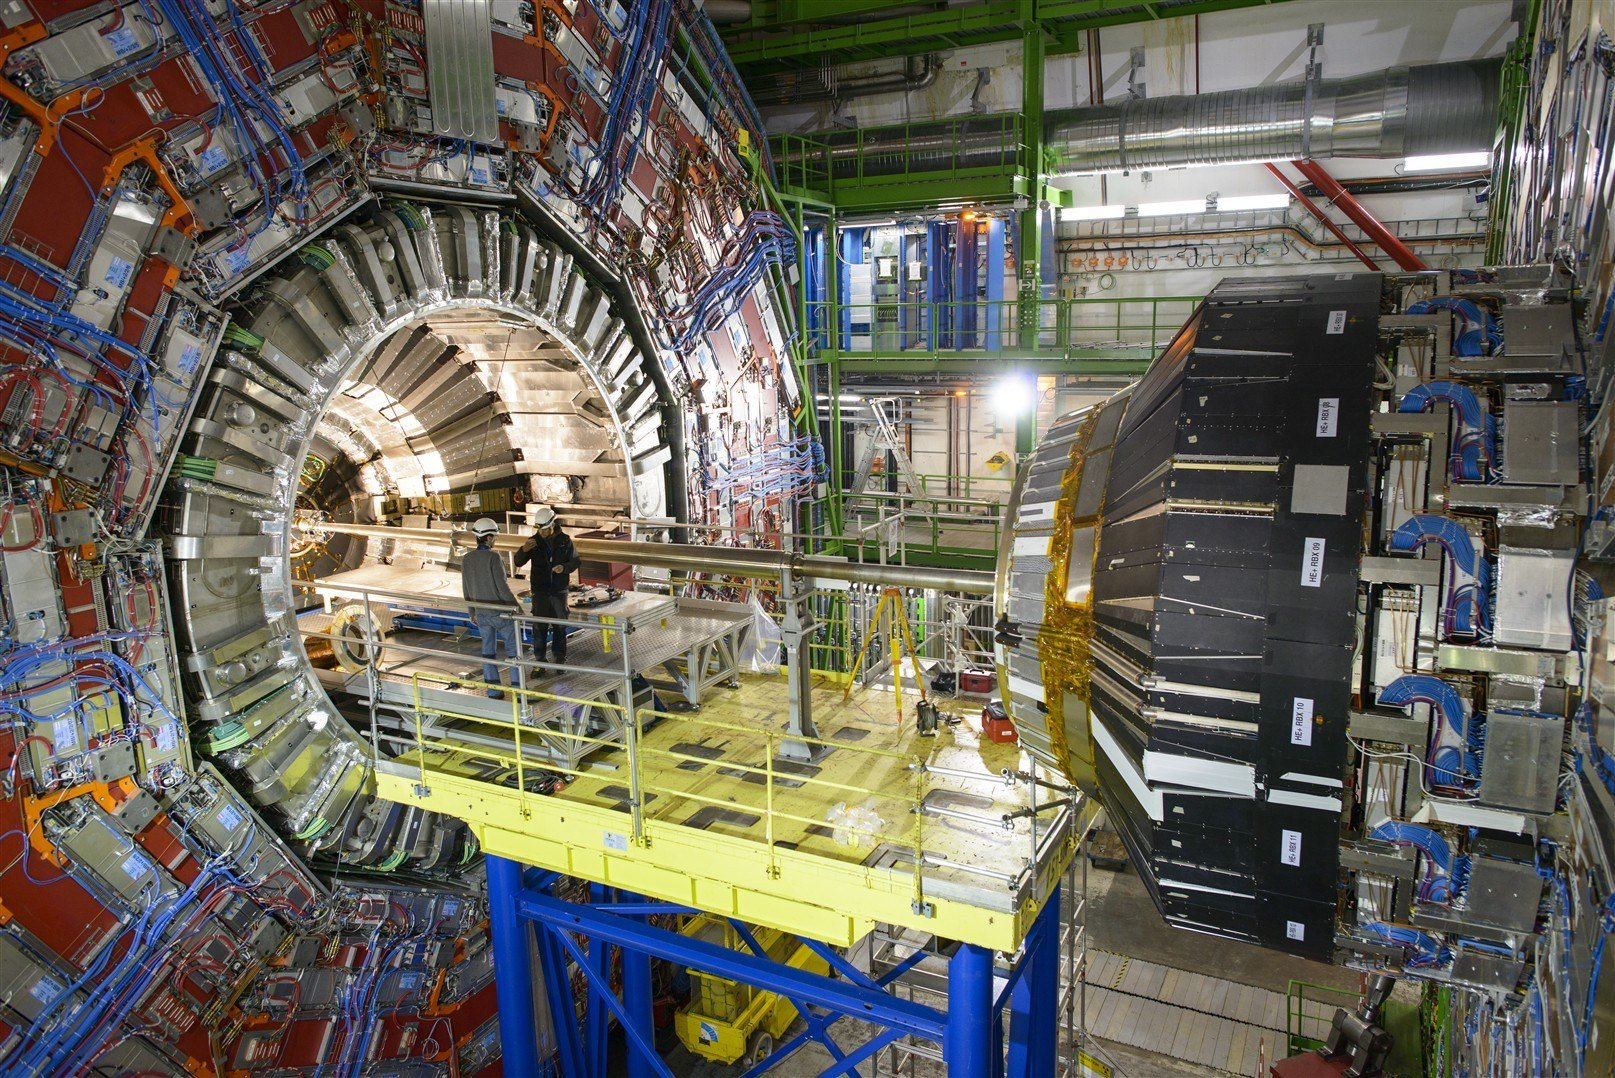 Why the Hadron Collider